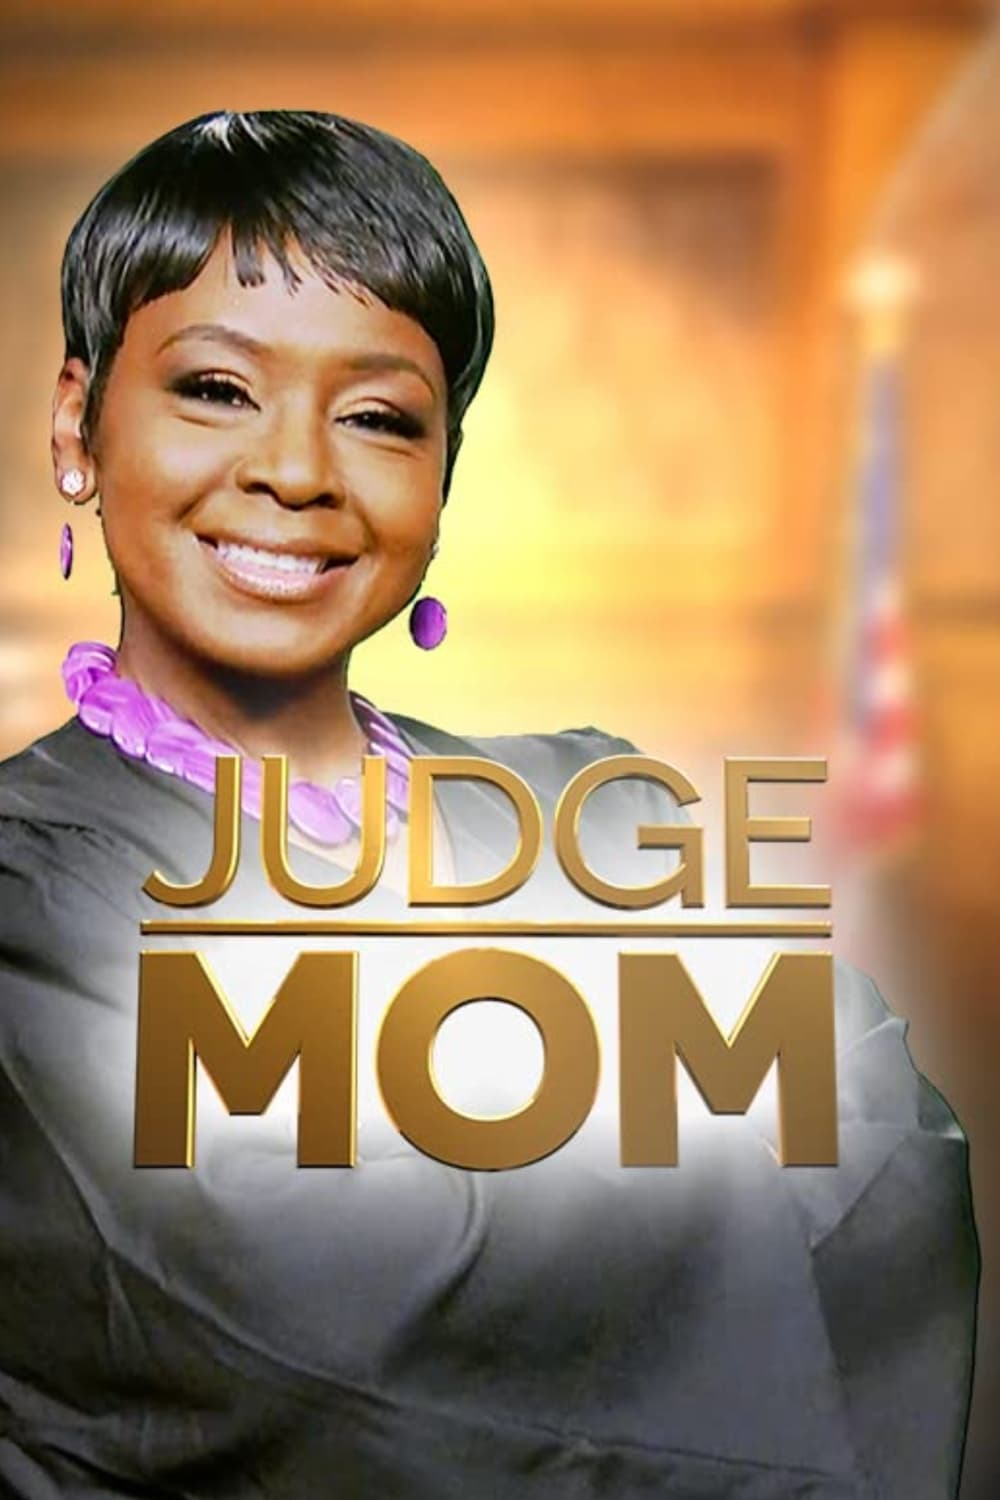 Judge Mom on FREECABLE TV